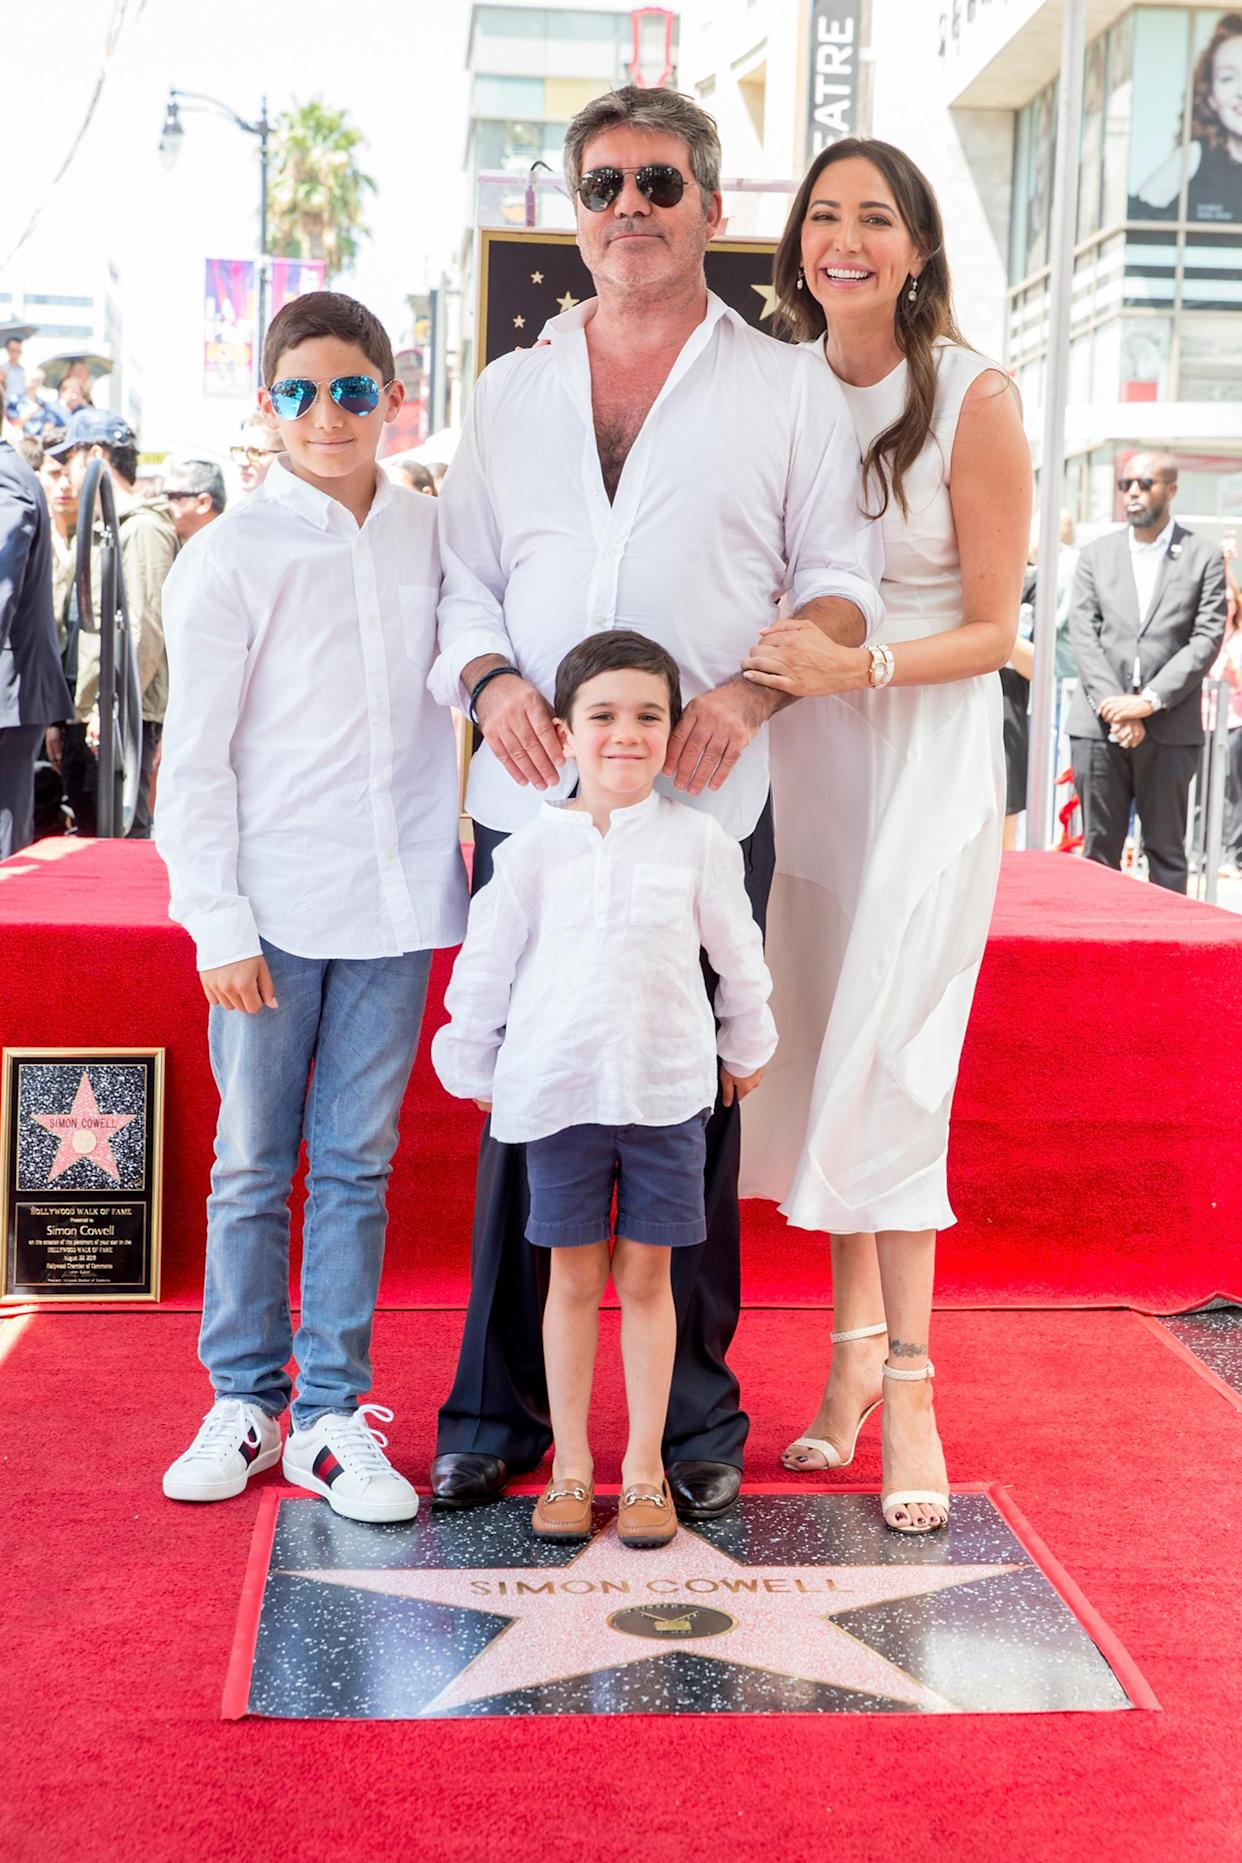 Simon Cowell with partner Lauren Silverman, their son, Eric, center, and her son, Adam. Yes, the boys wore white button-downs just like Simon, who is never without one. (Photo: Rich Fury/Getty Images)